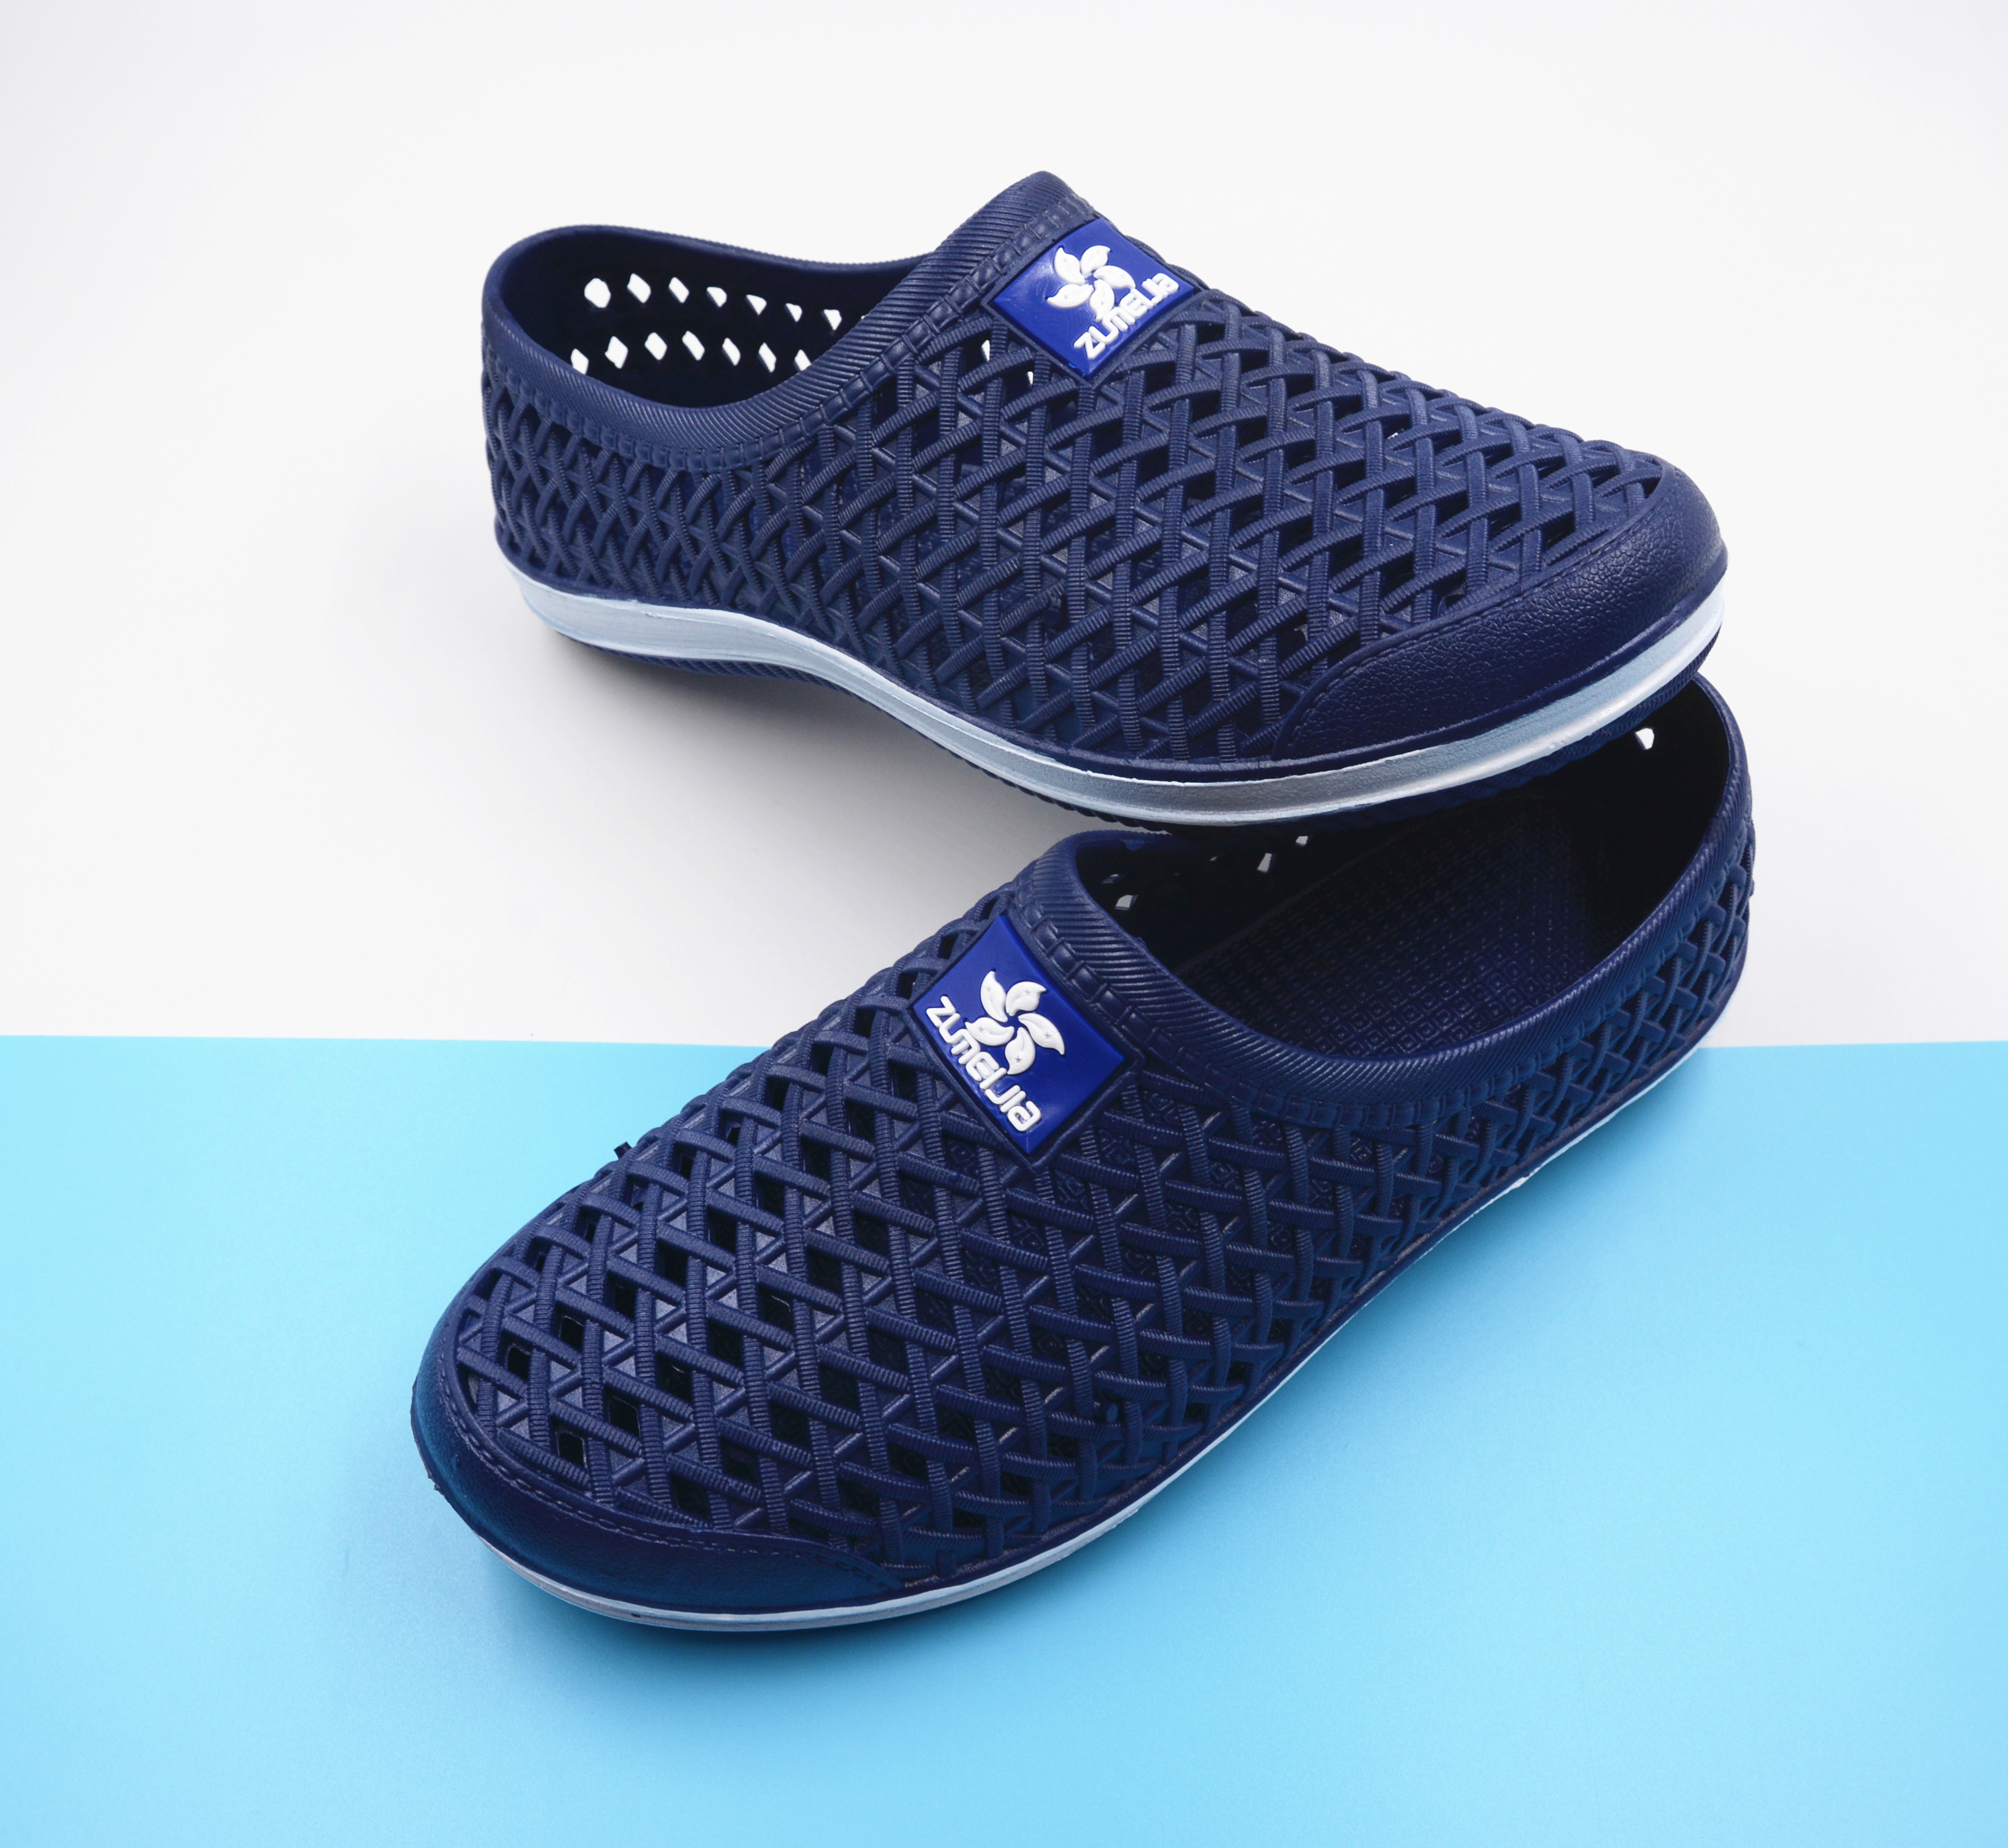 Fashion Outside Hole-in Shoes Summer Slip-proof and Air-permeable Hollow-out Sandals Slippers Men's Beach Trend Soft Bottom Students